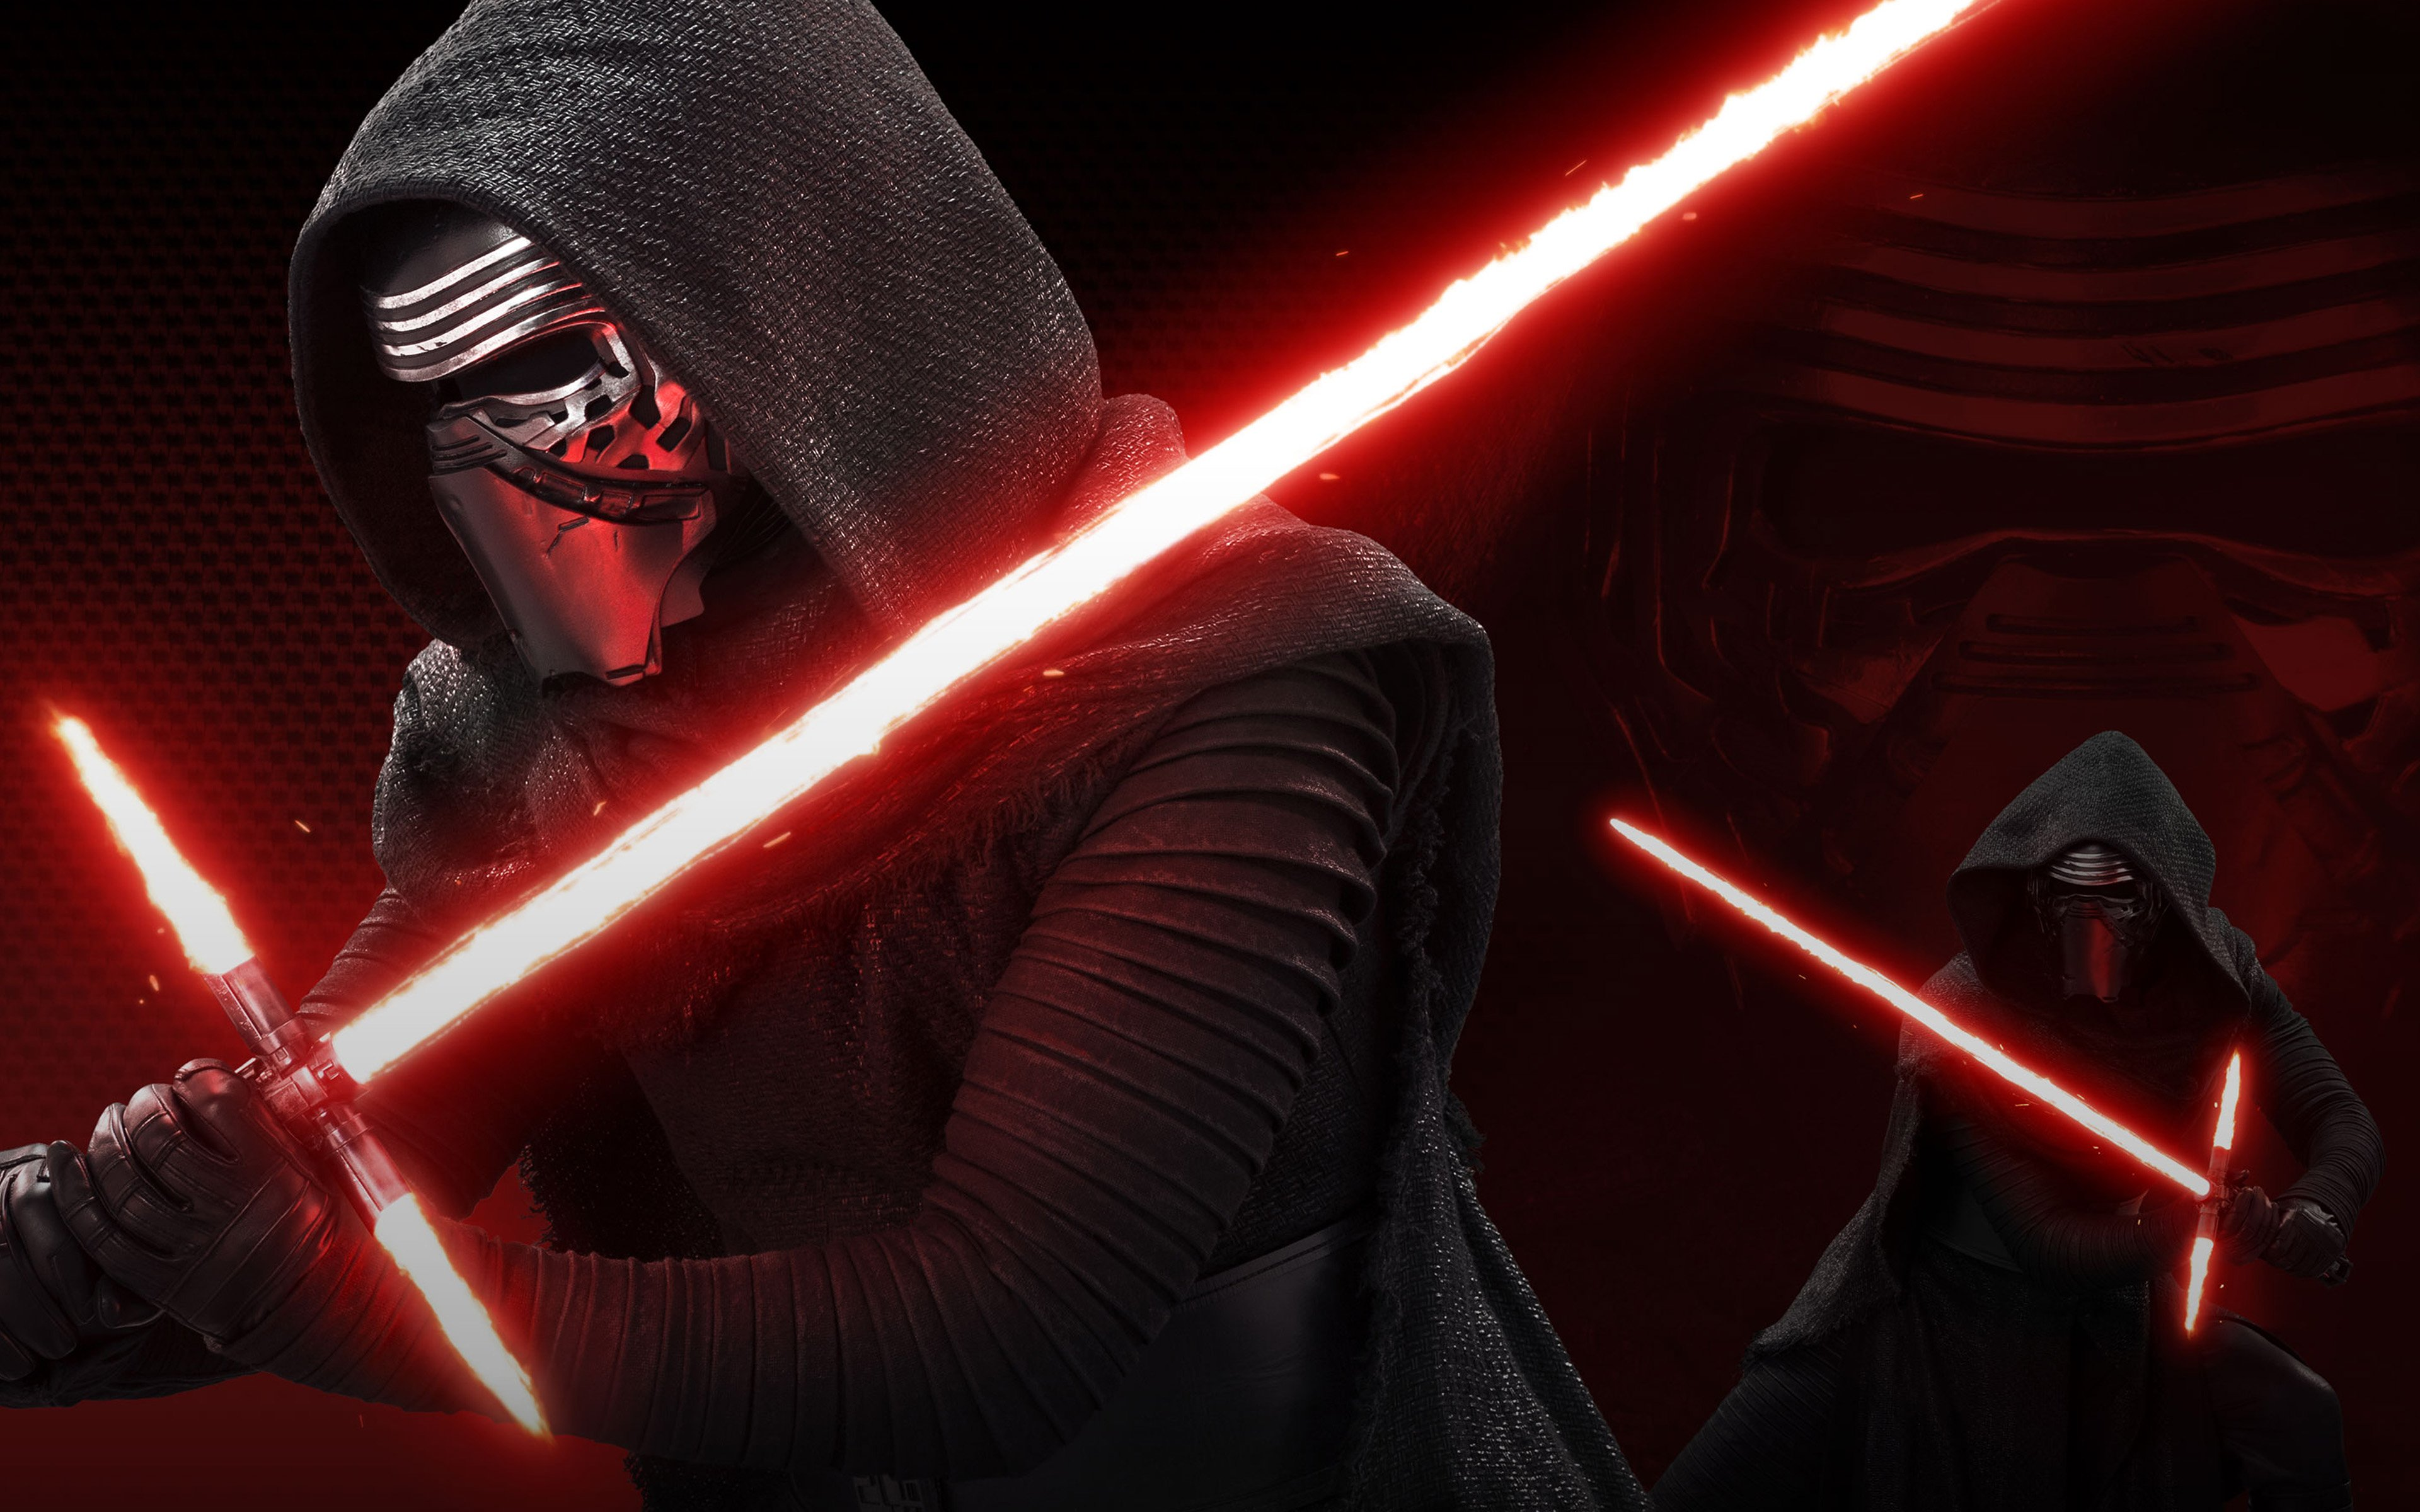 Star Wars Kylo Ren Wallpaper Posted By Sarah Thompson